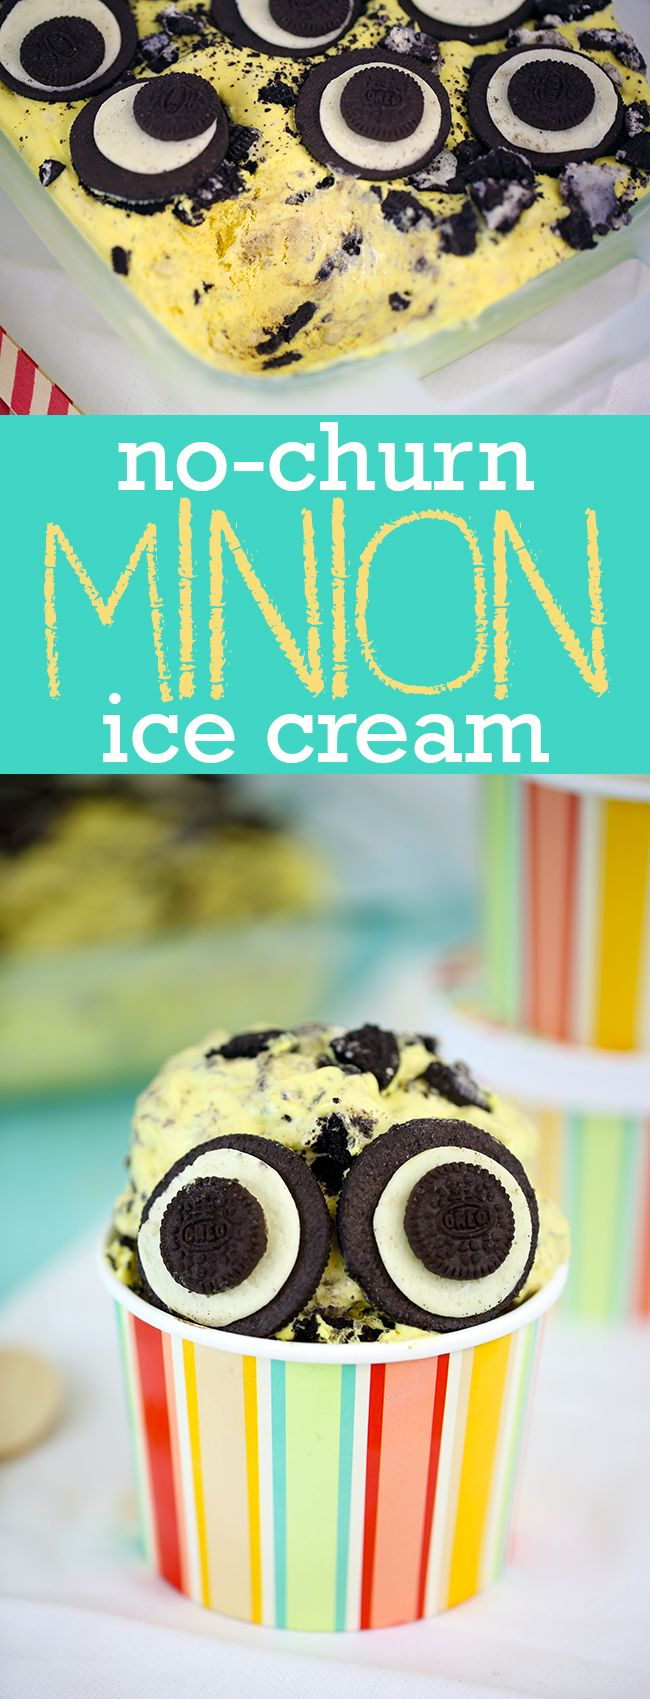 CUTE ALERT! No Churn Minion Ice Cream recipe. Delicious kid friendly ice cream loaded with bananas of course and Oreo cookies.